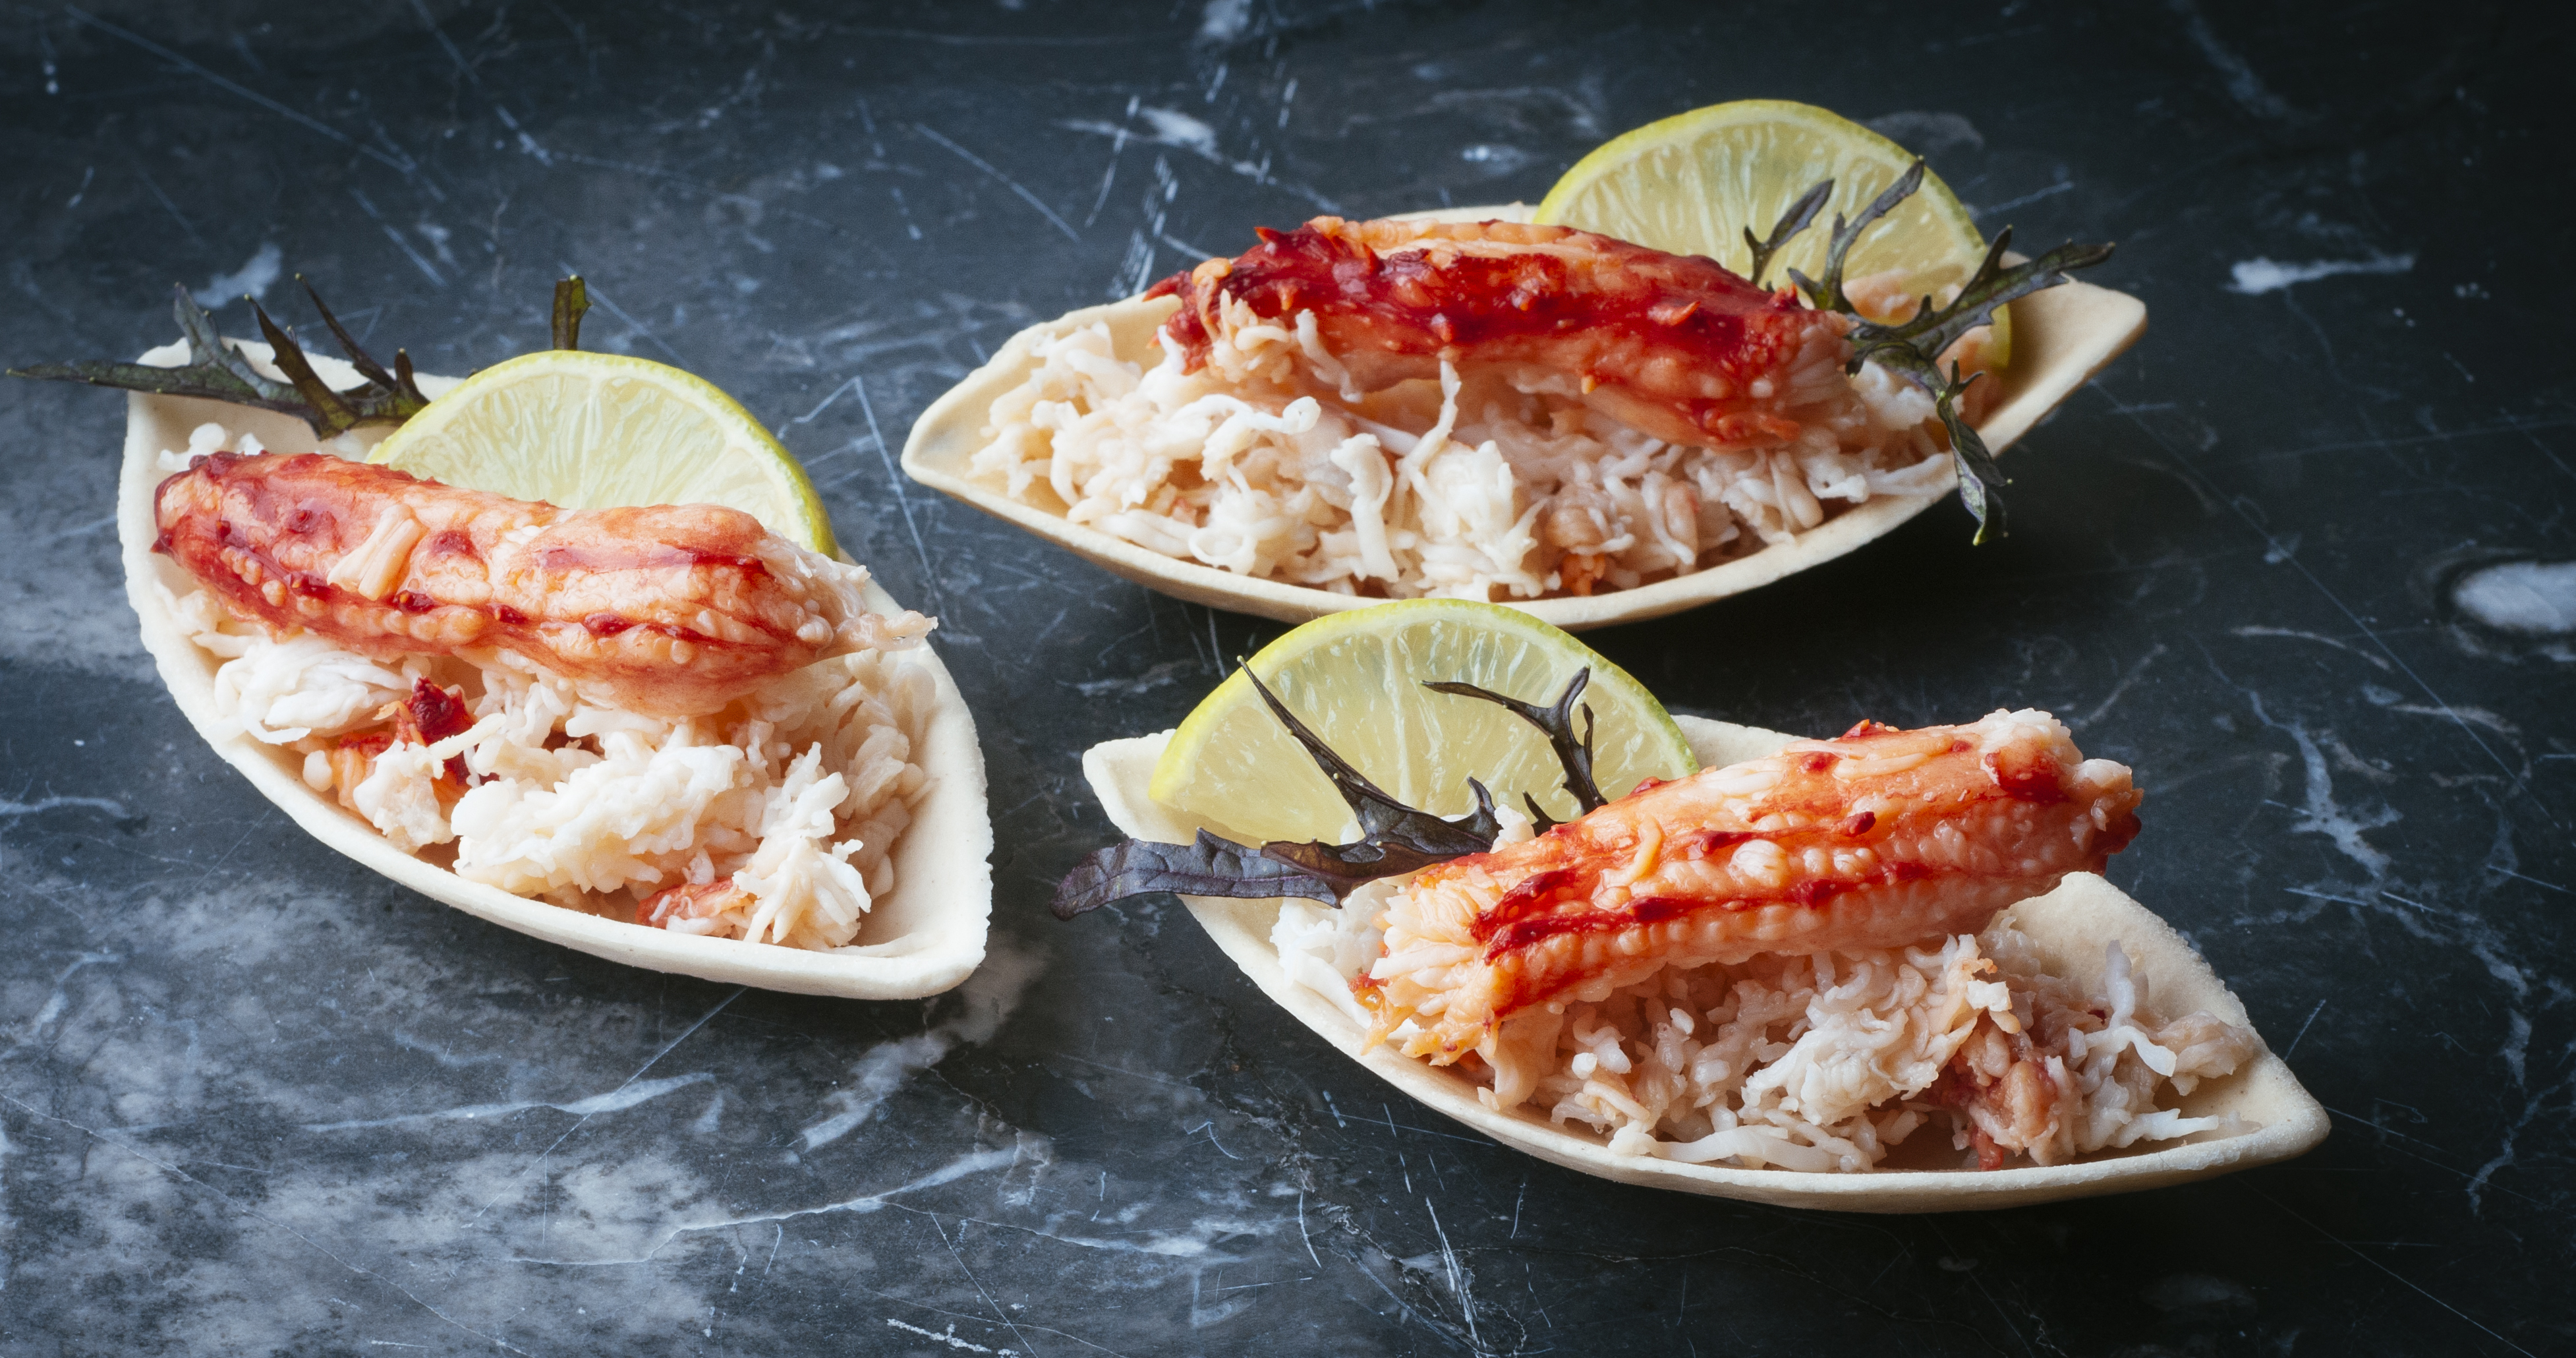 cooked crab laid on decorative platters, garnished with seaweed and lemon